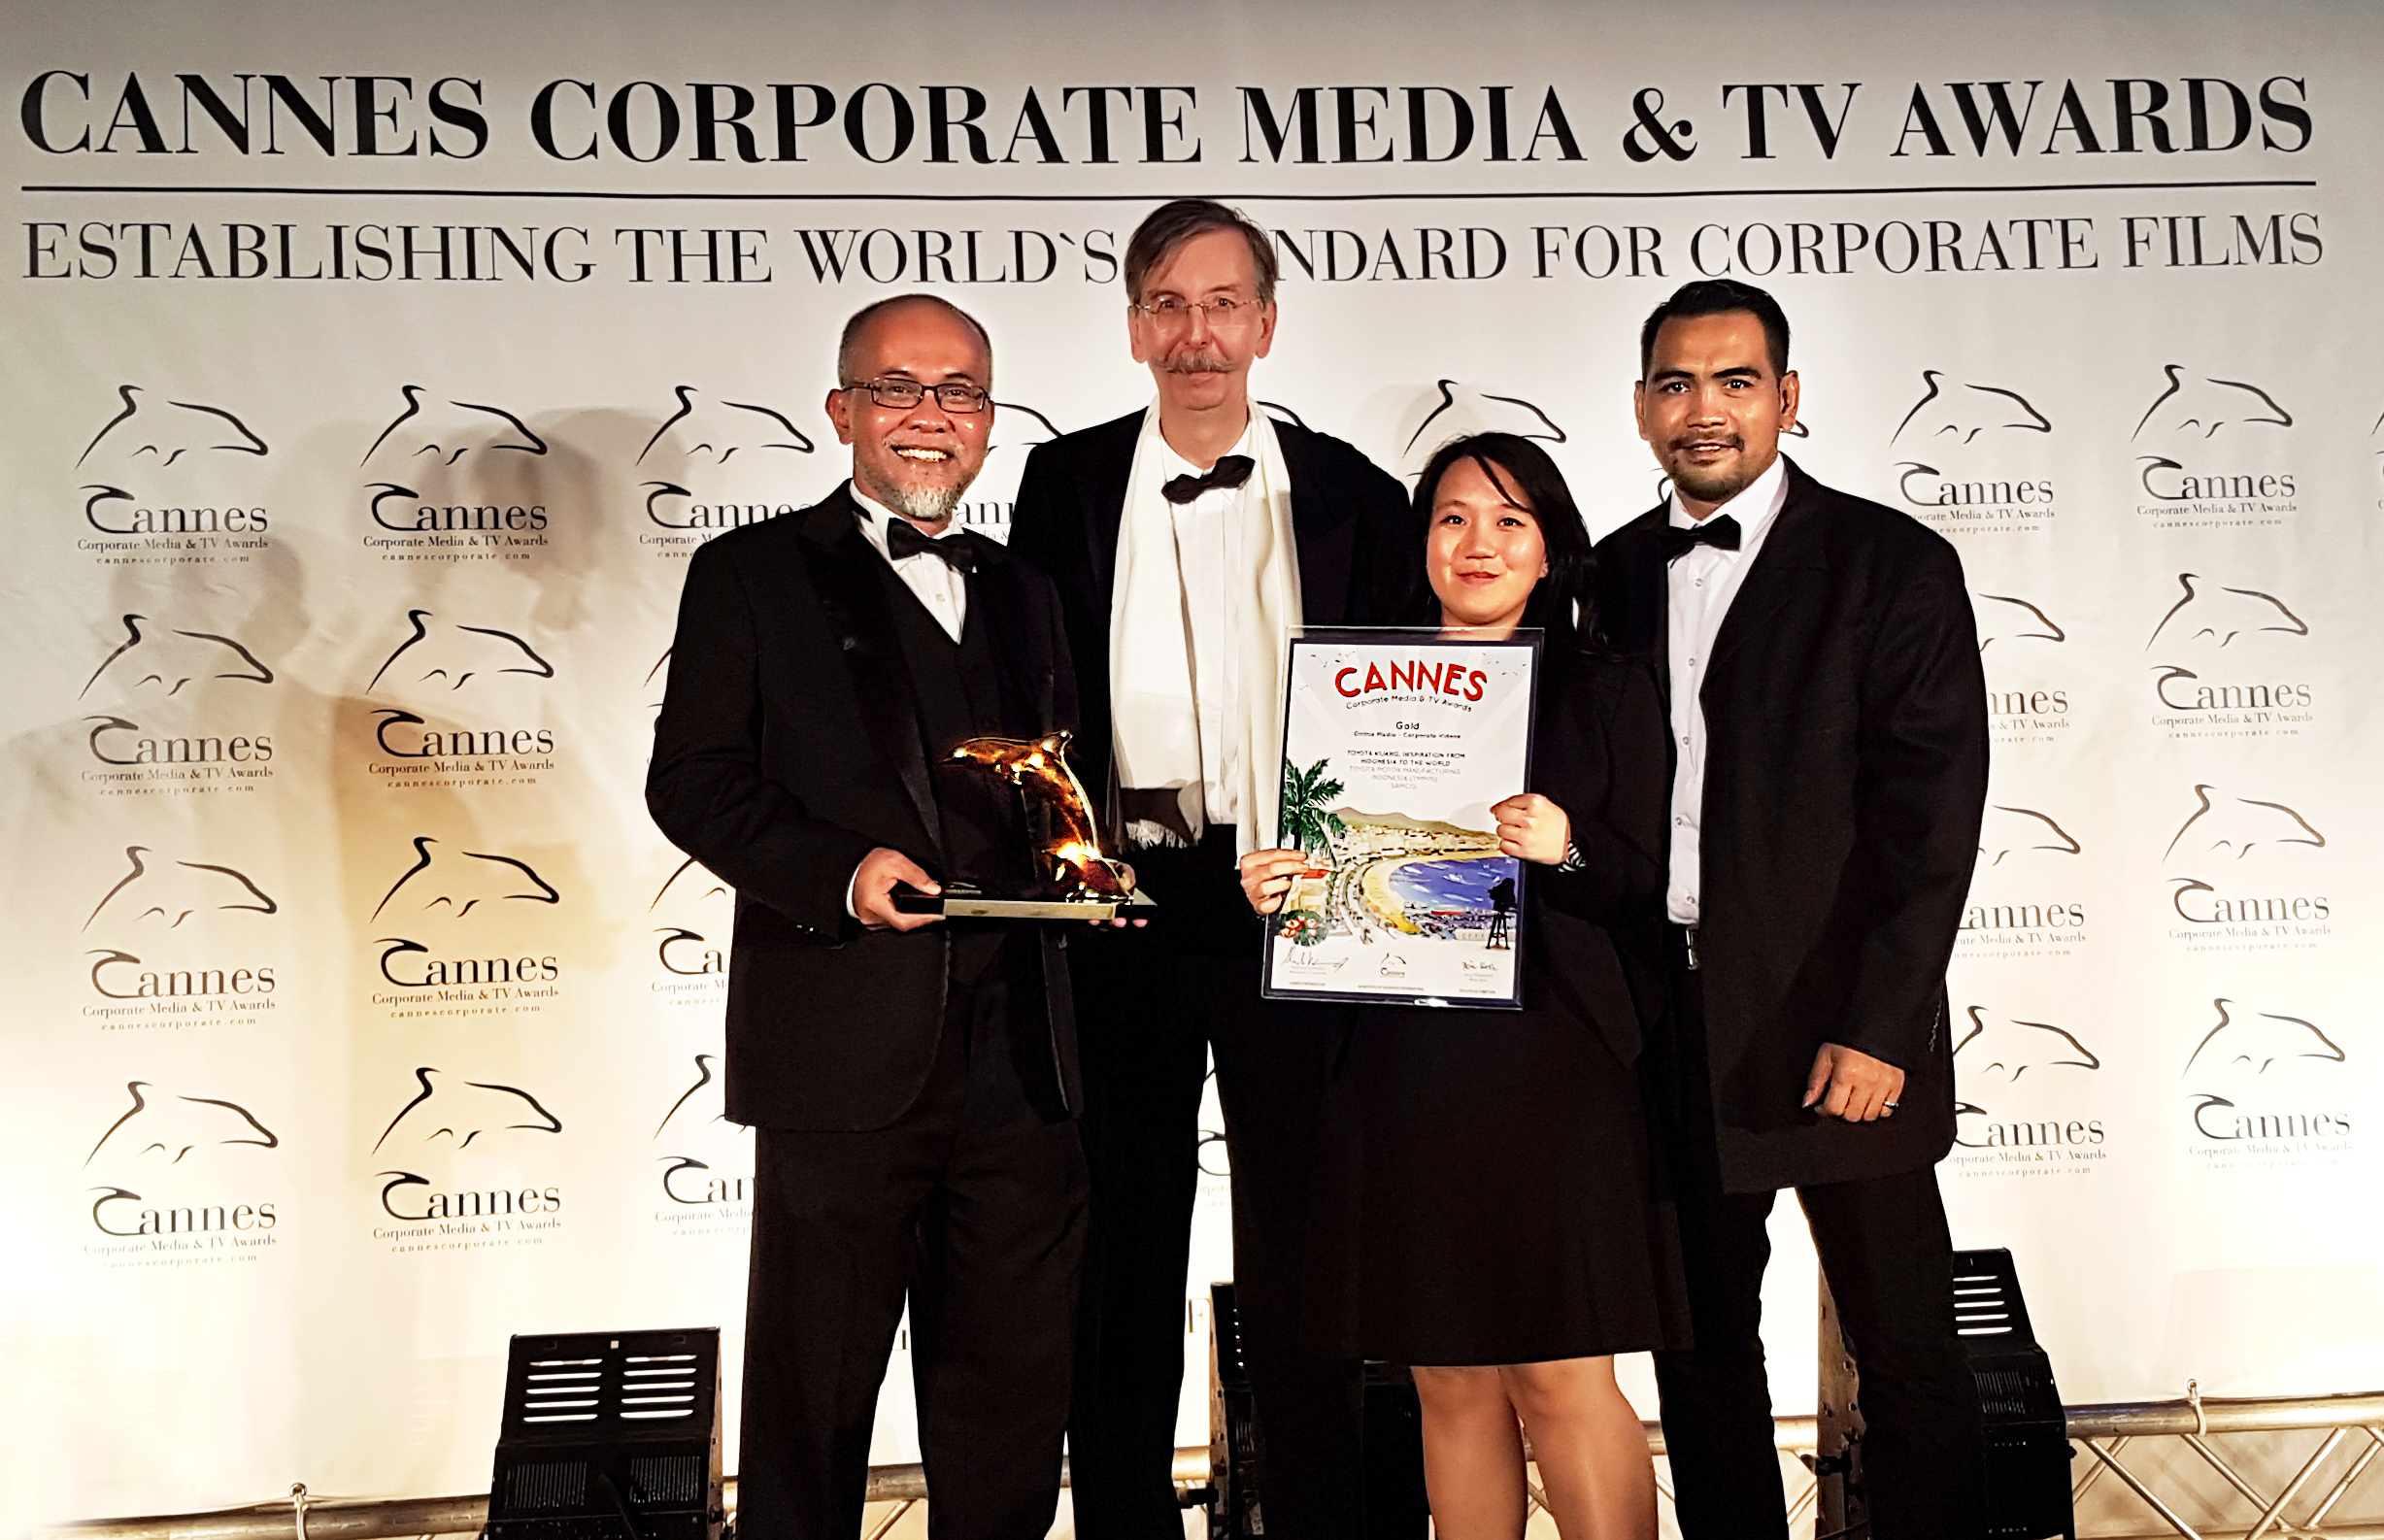 Cannes Corporate Media & TV Awards 2016